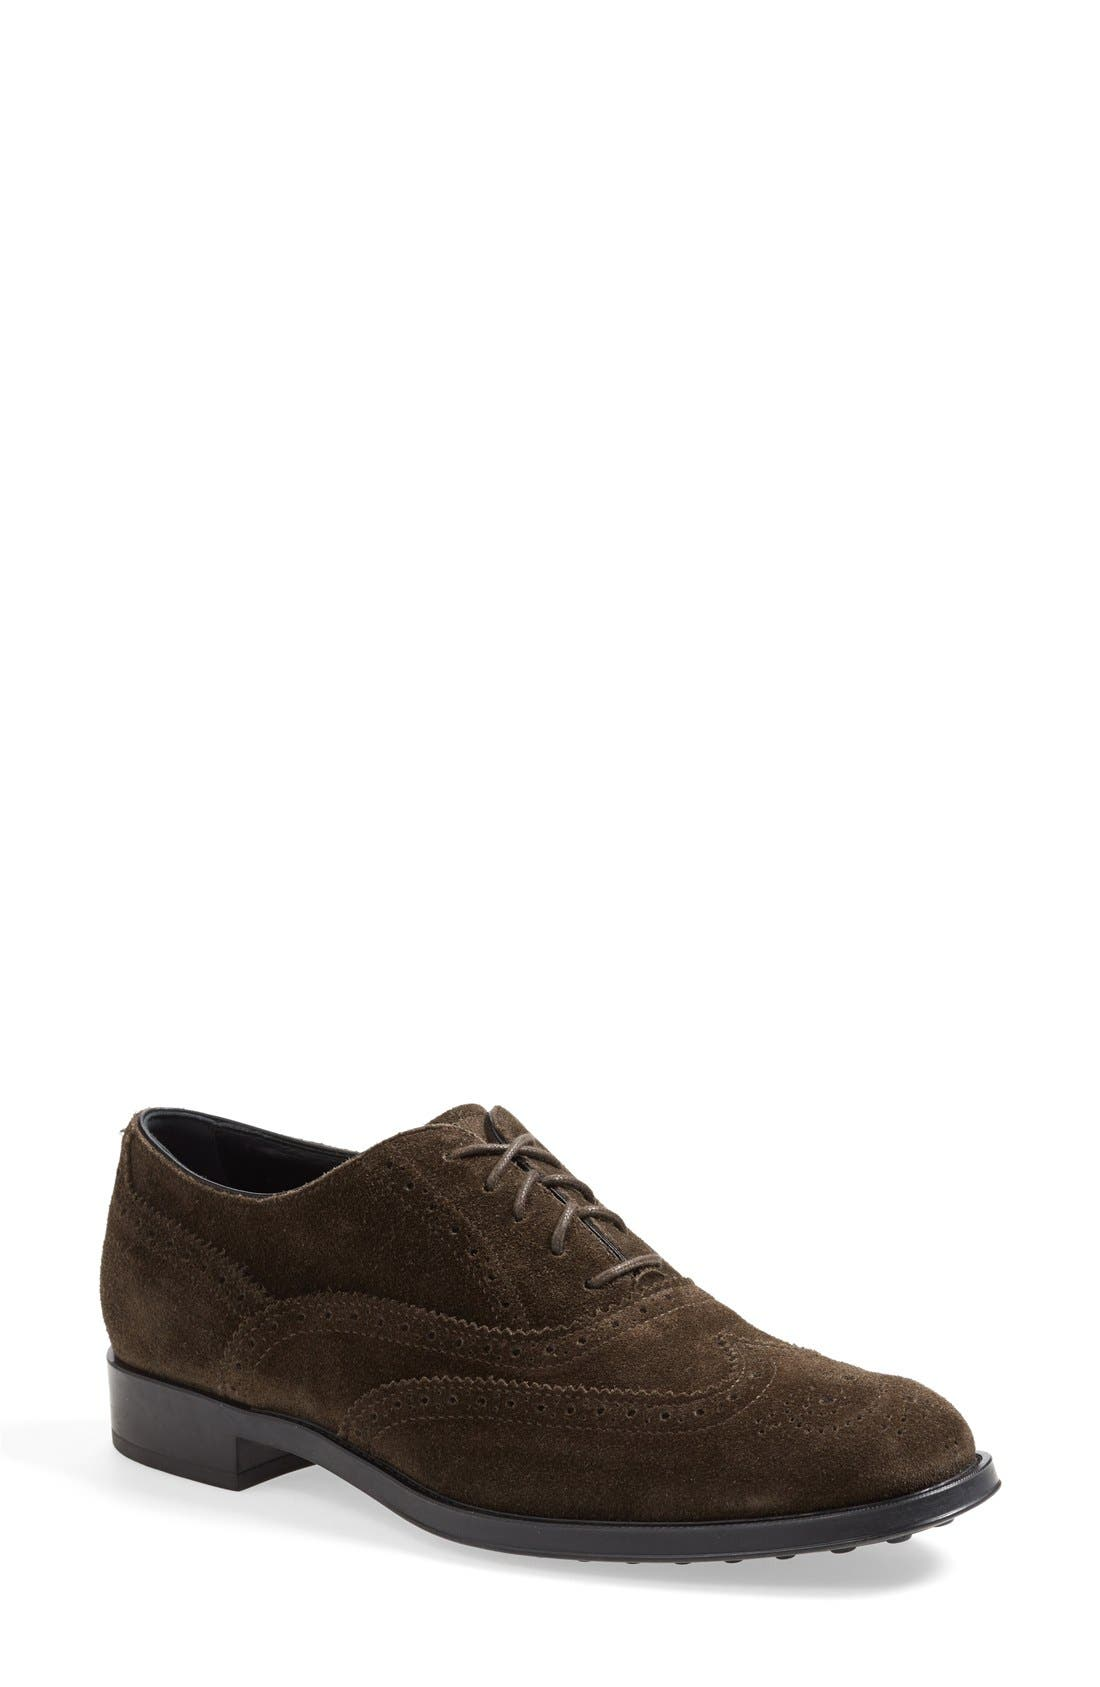 Alternate Image 1 Selected - Tod's Brogue Oxford (Women)